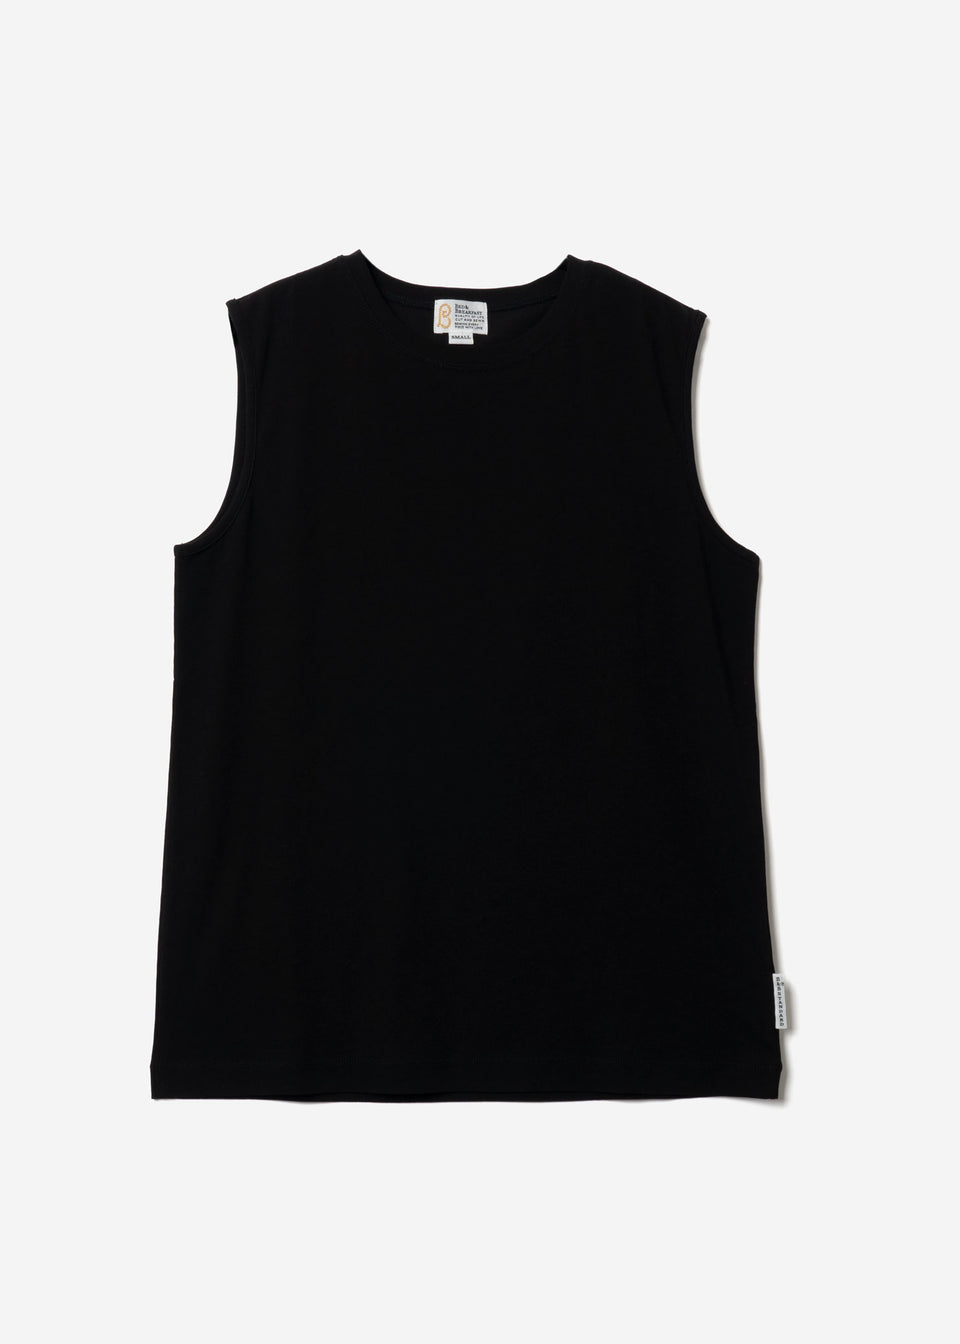 Technorama Standard Tank in Black